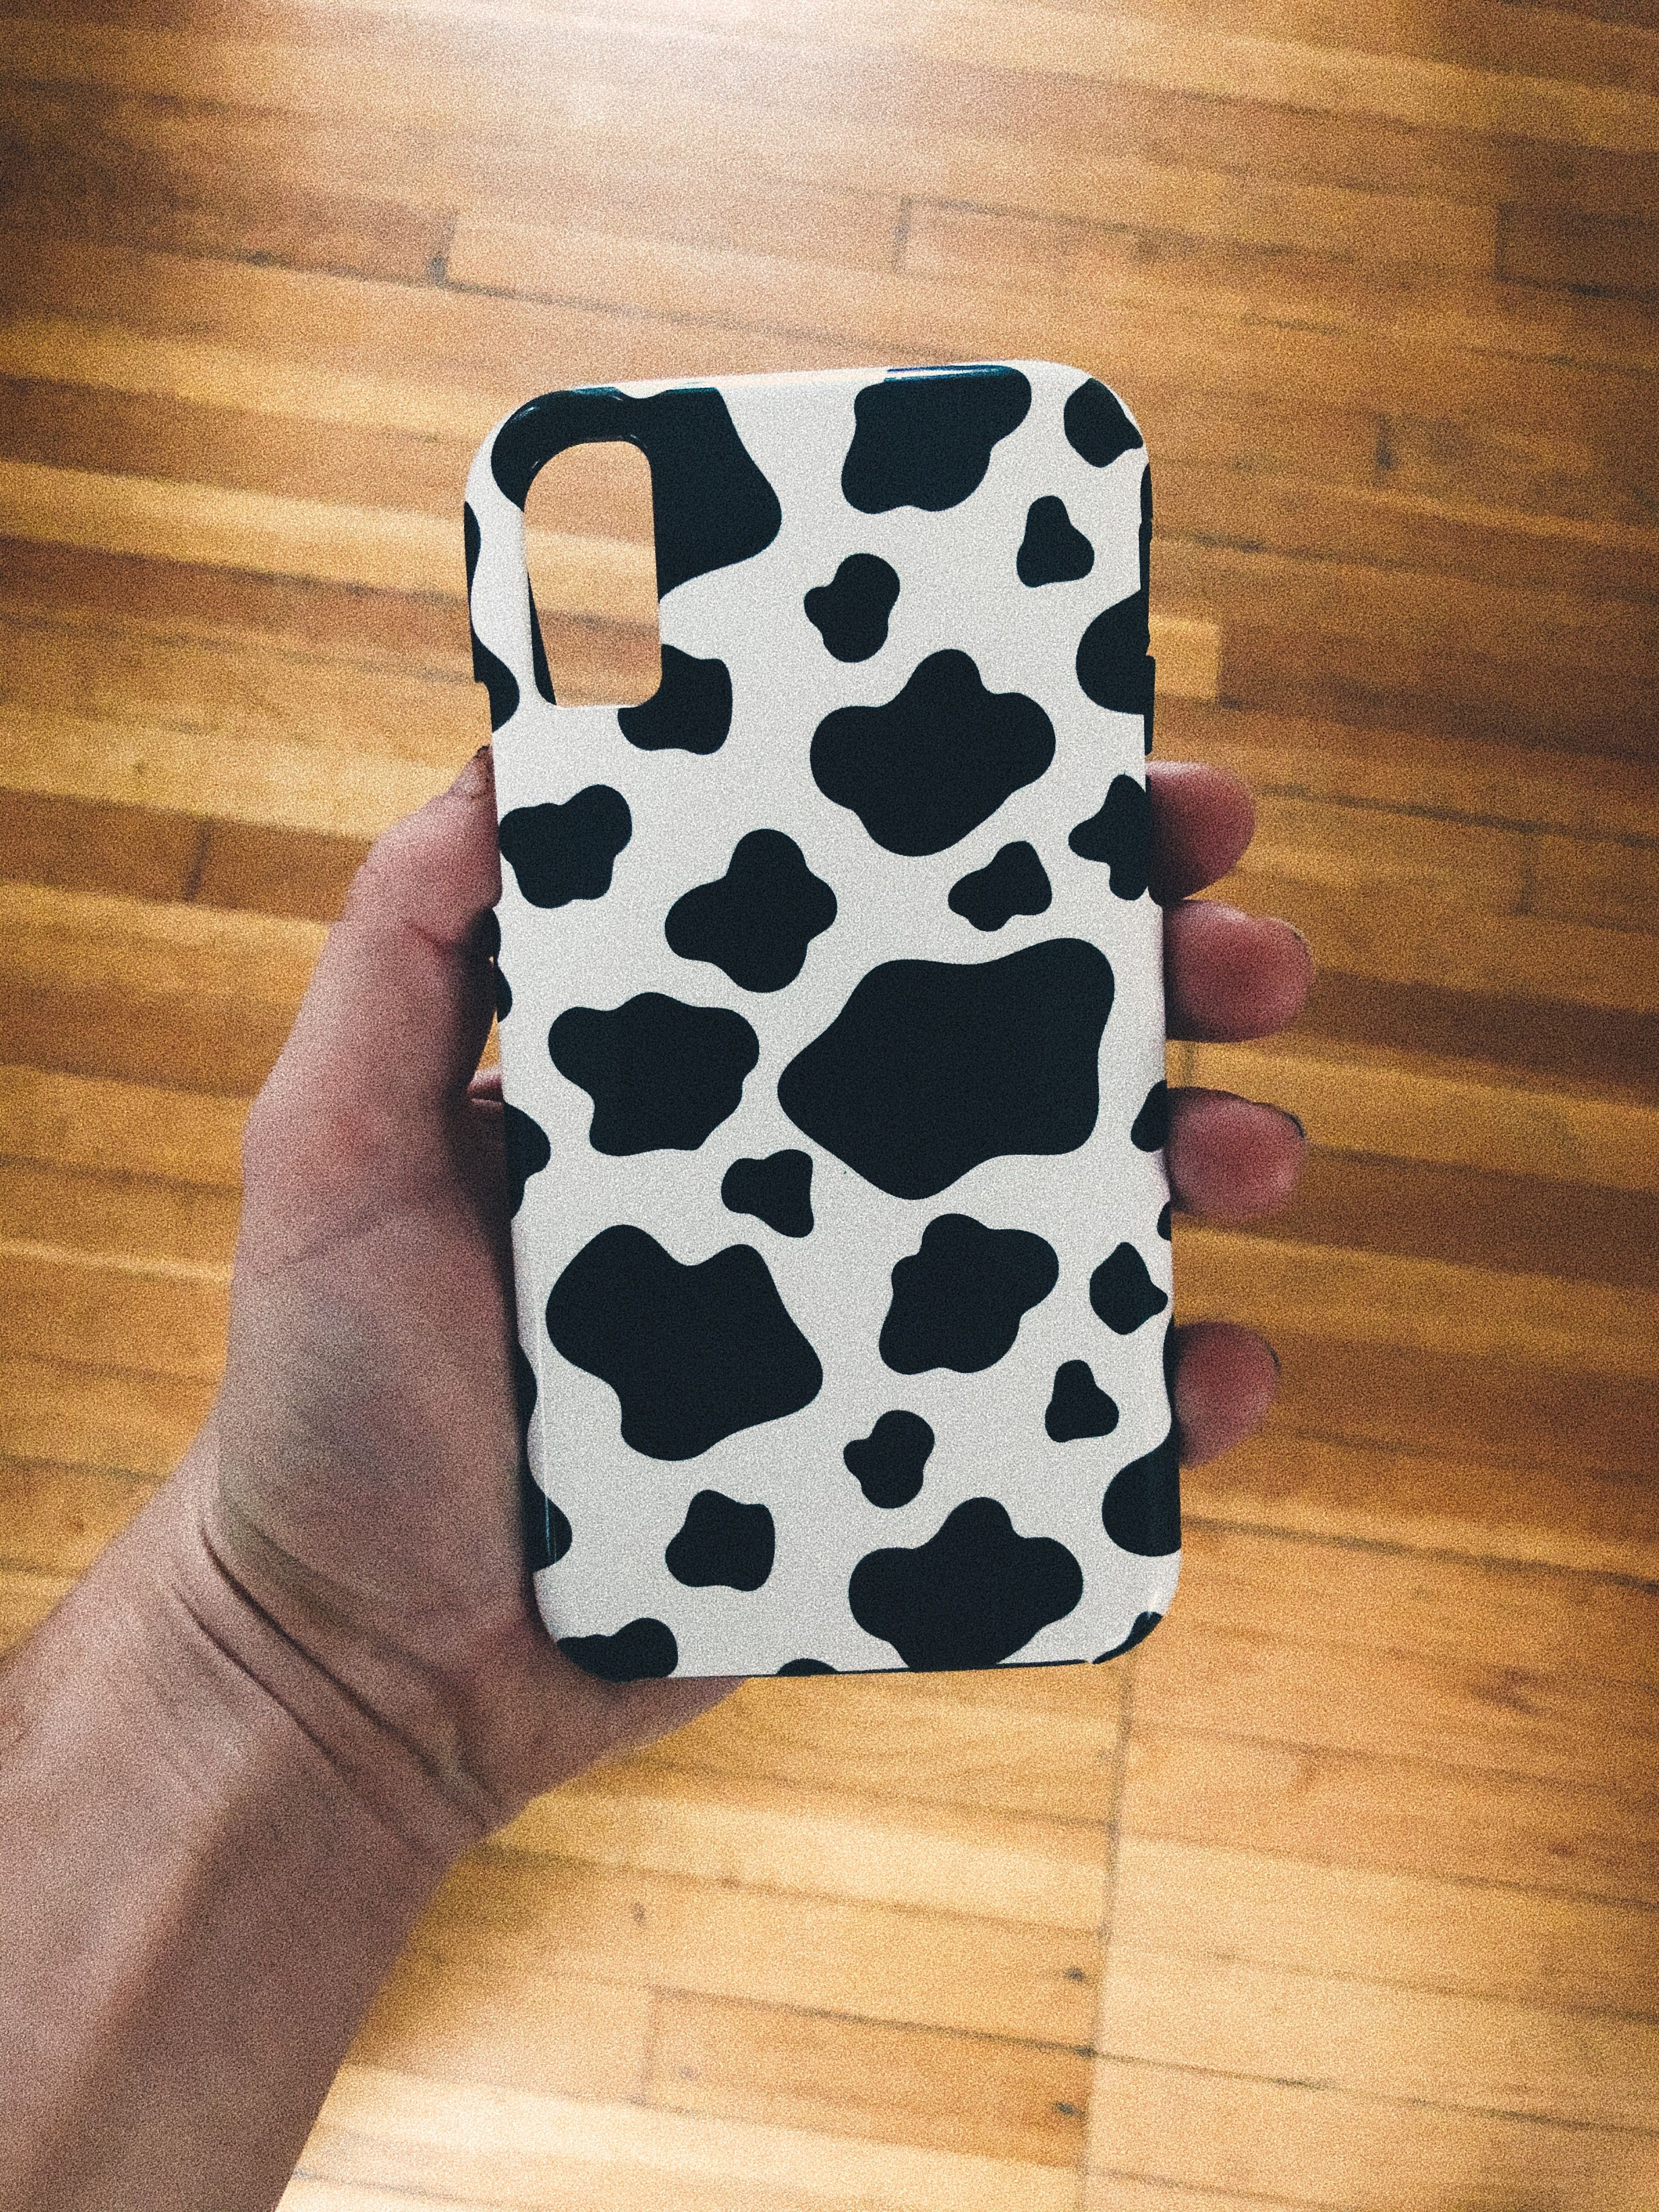 Cow print phone case in 2020 cow print phone cases cow